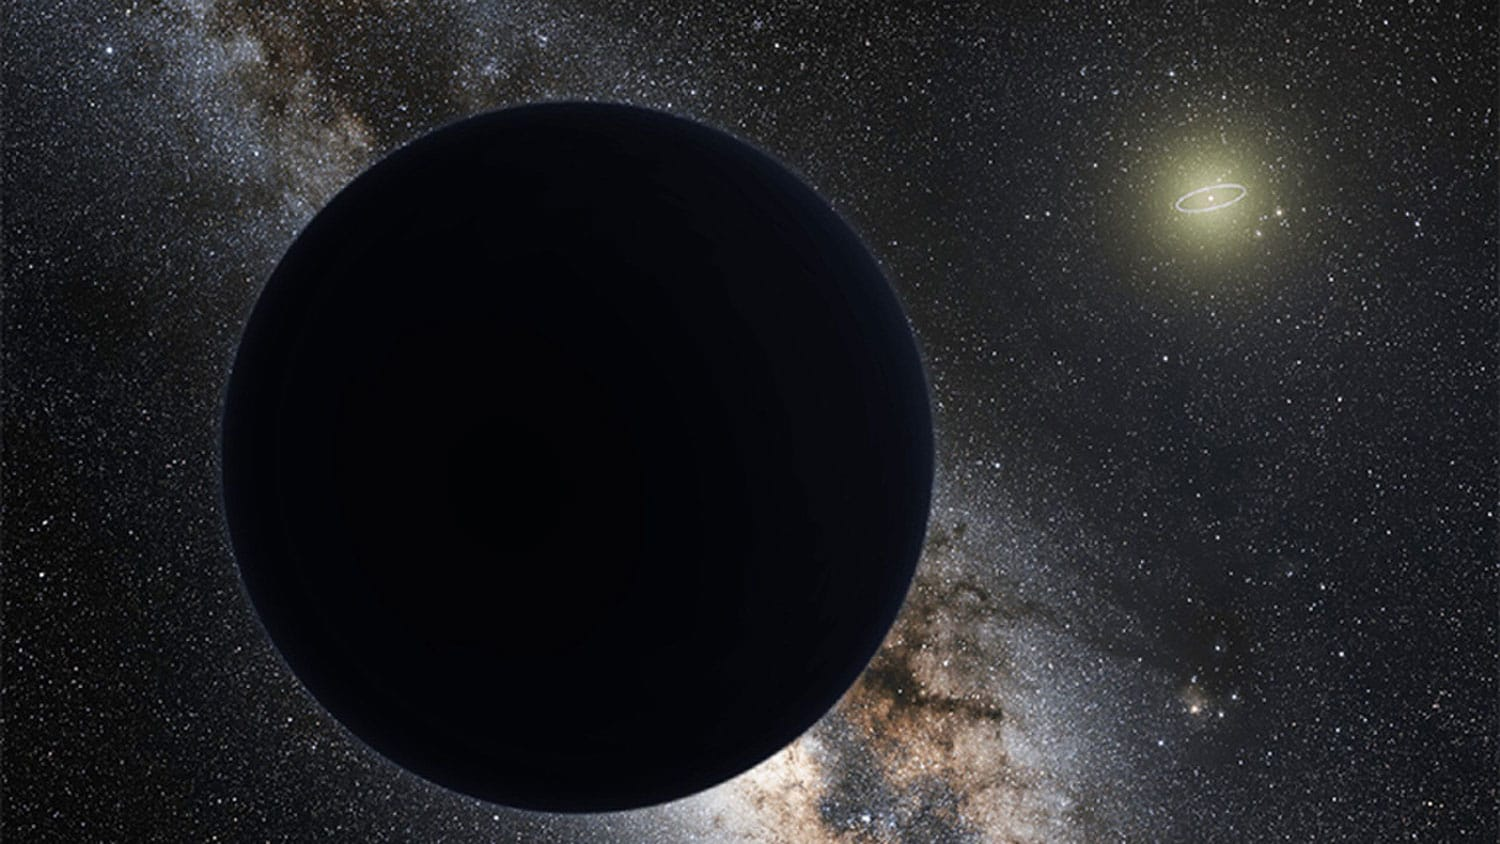 Determining the true nature of the Planet Nine